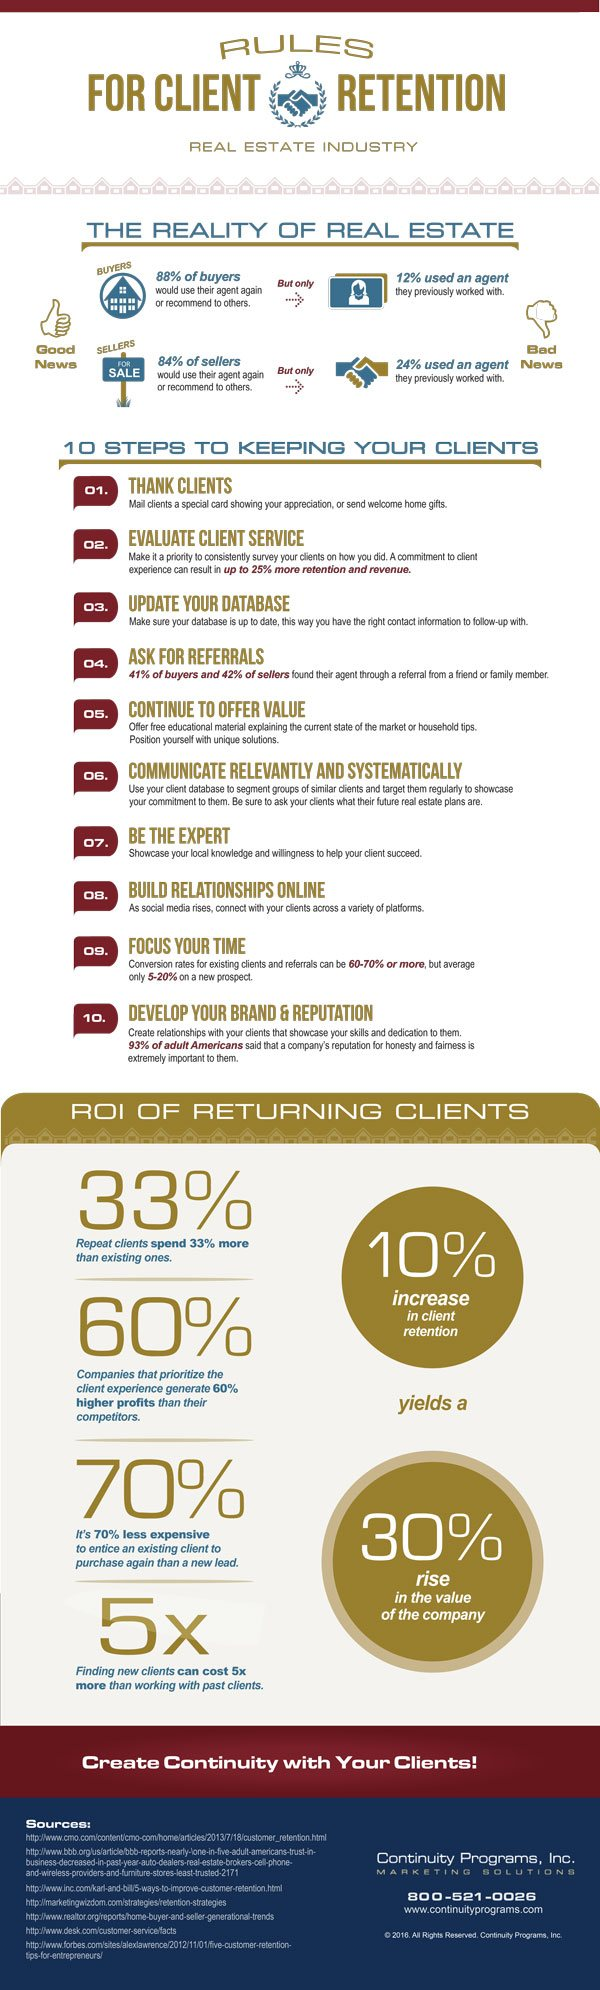 Real Estate Infographic - Real Estate Rules for Client Retention